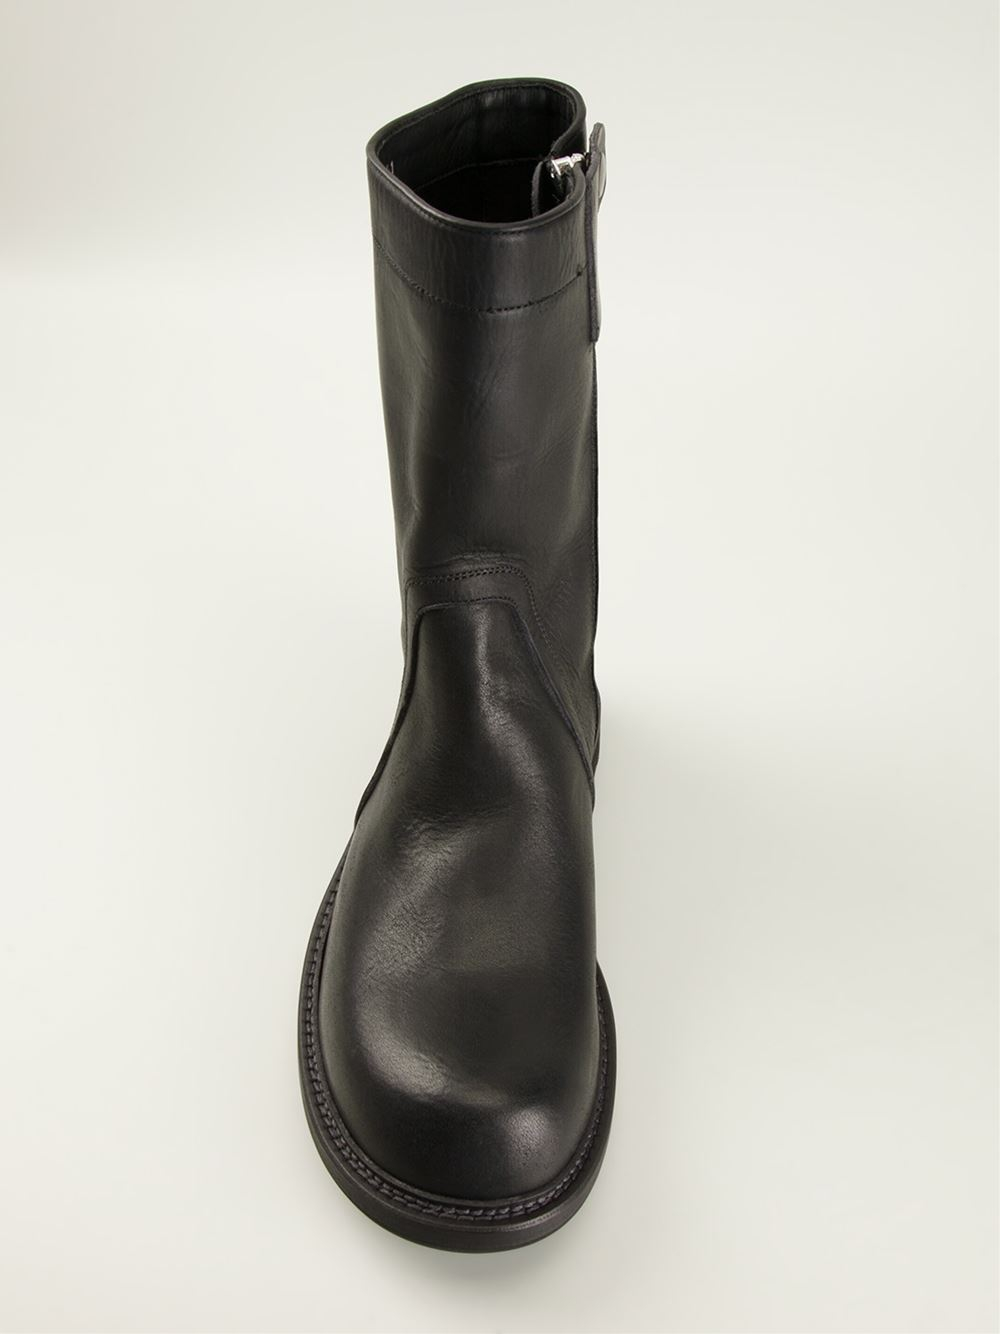 creeper boots - Black Rick Owens Discount View Excellent For Sale Choice VEyb6m